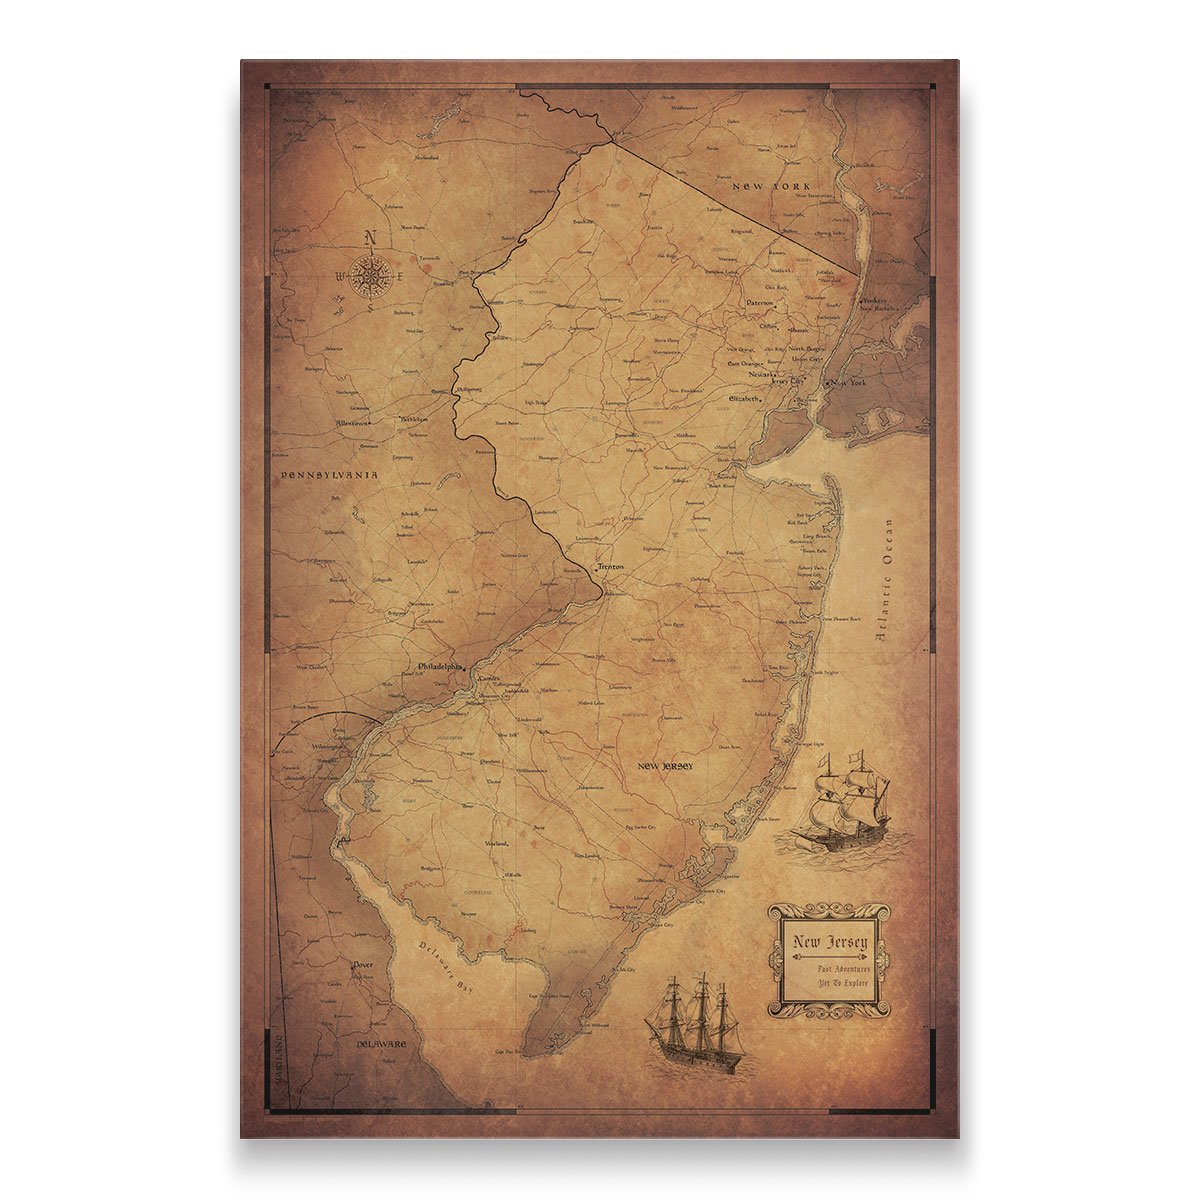 New Jersey Travel Map Pin Board with Push Pins: Golden Aged